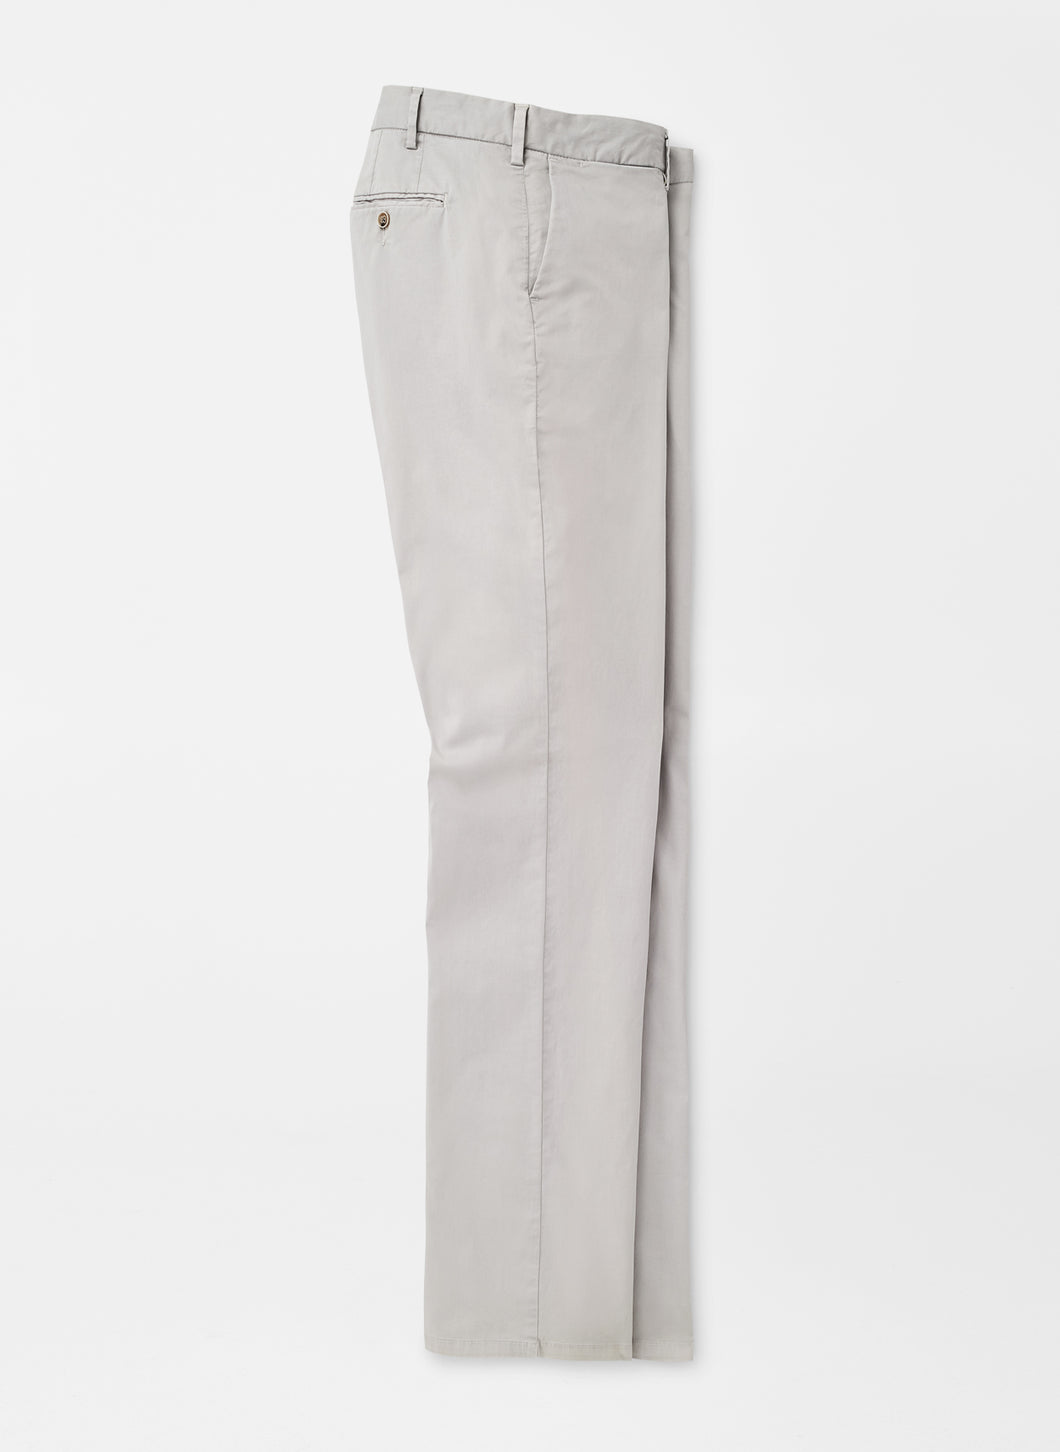 Peter Millar Crown Soft Flat Front Trouser in British Grey